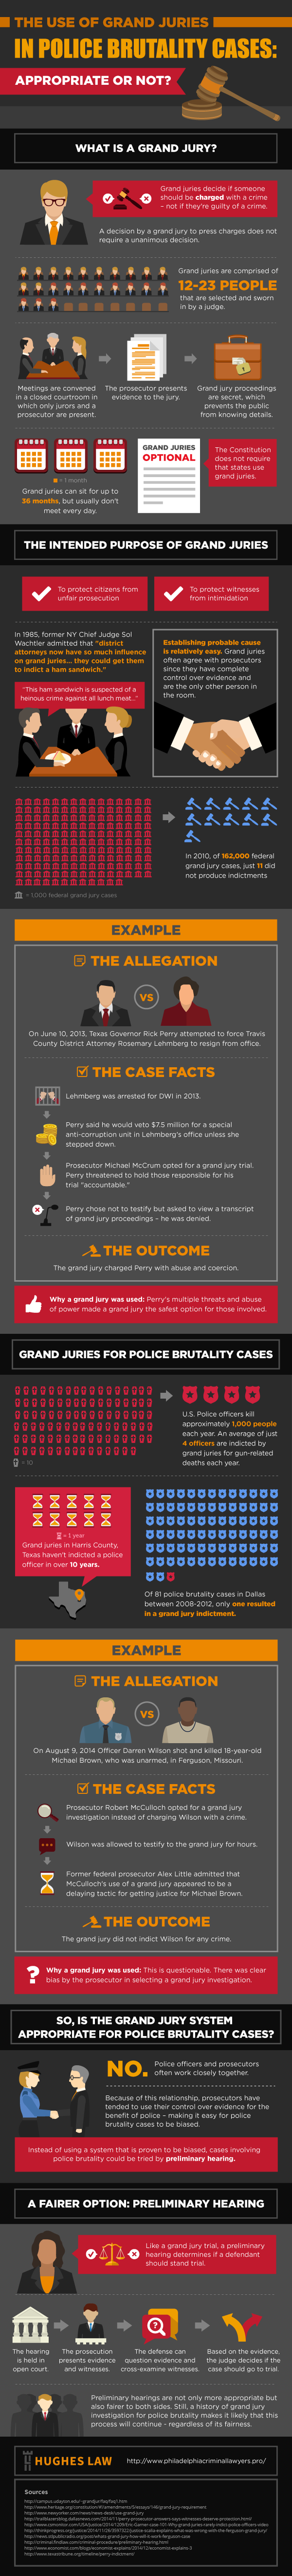 use-grand-juries-police-brutality-cases